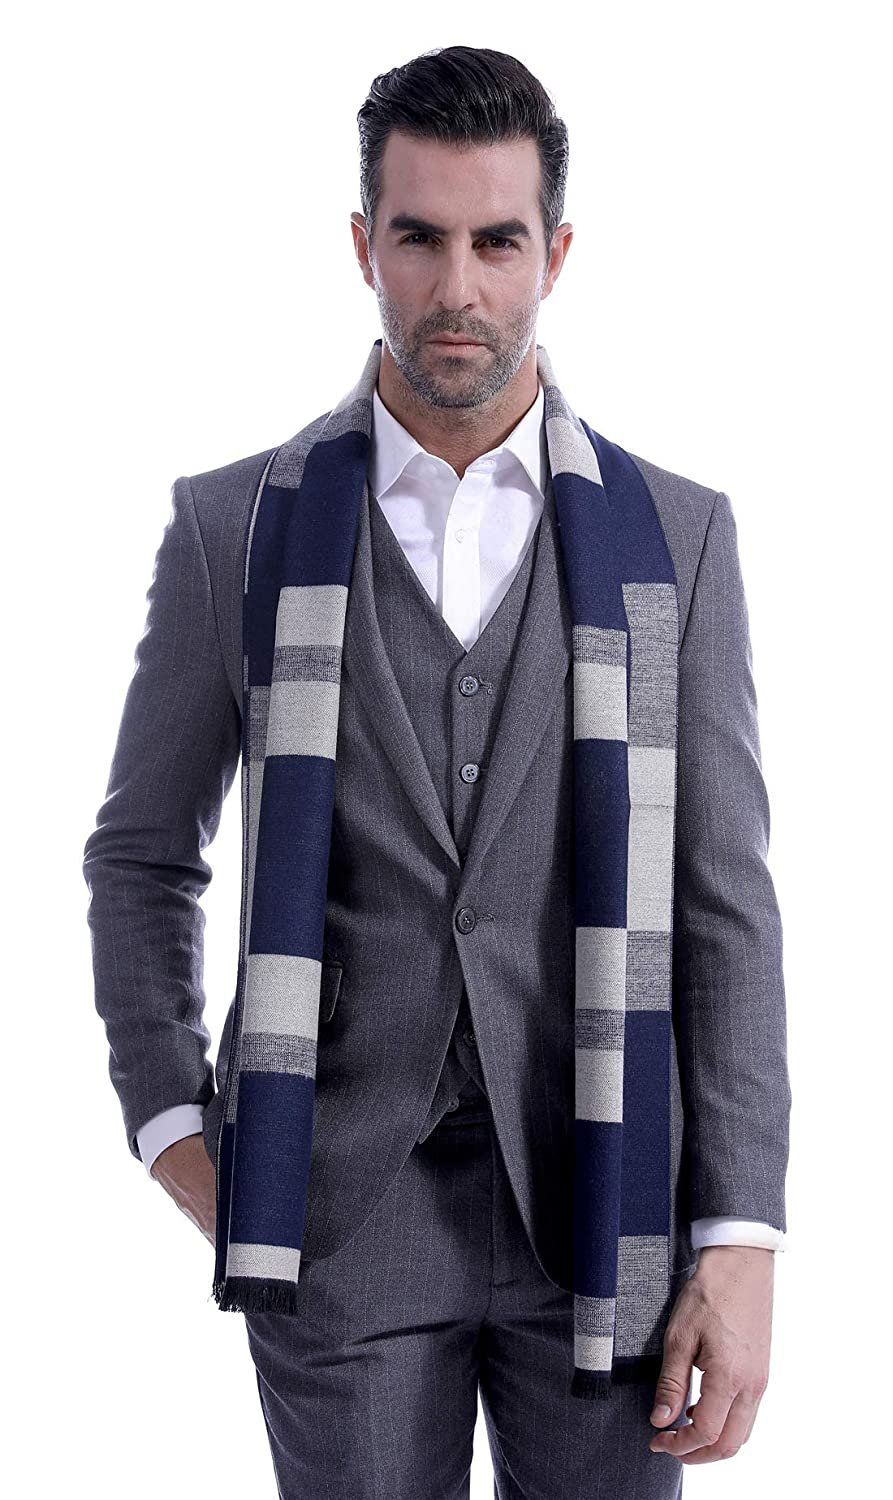 Fashion Business Men's Scarf Thickened Cashmere-like Winter Men's Warm Scarf Panegy